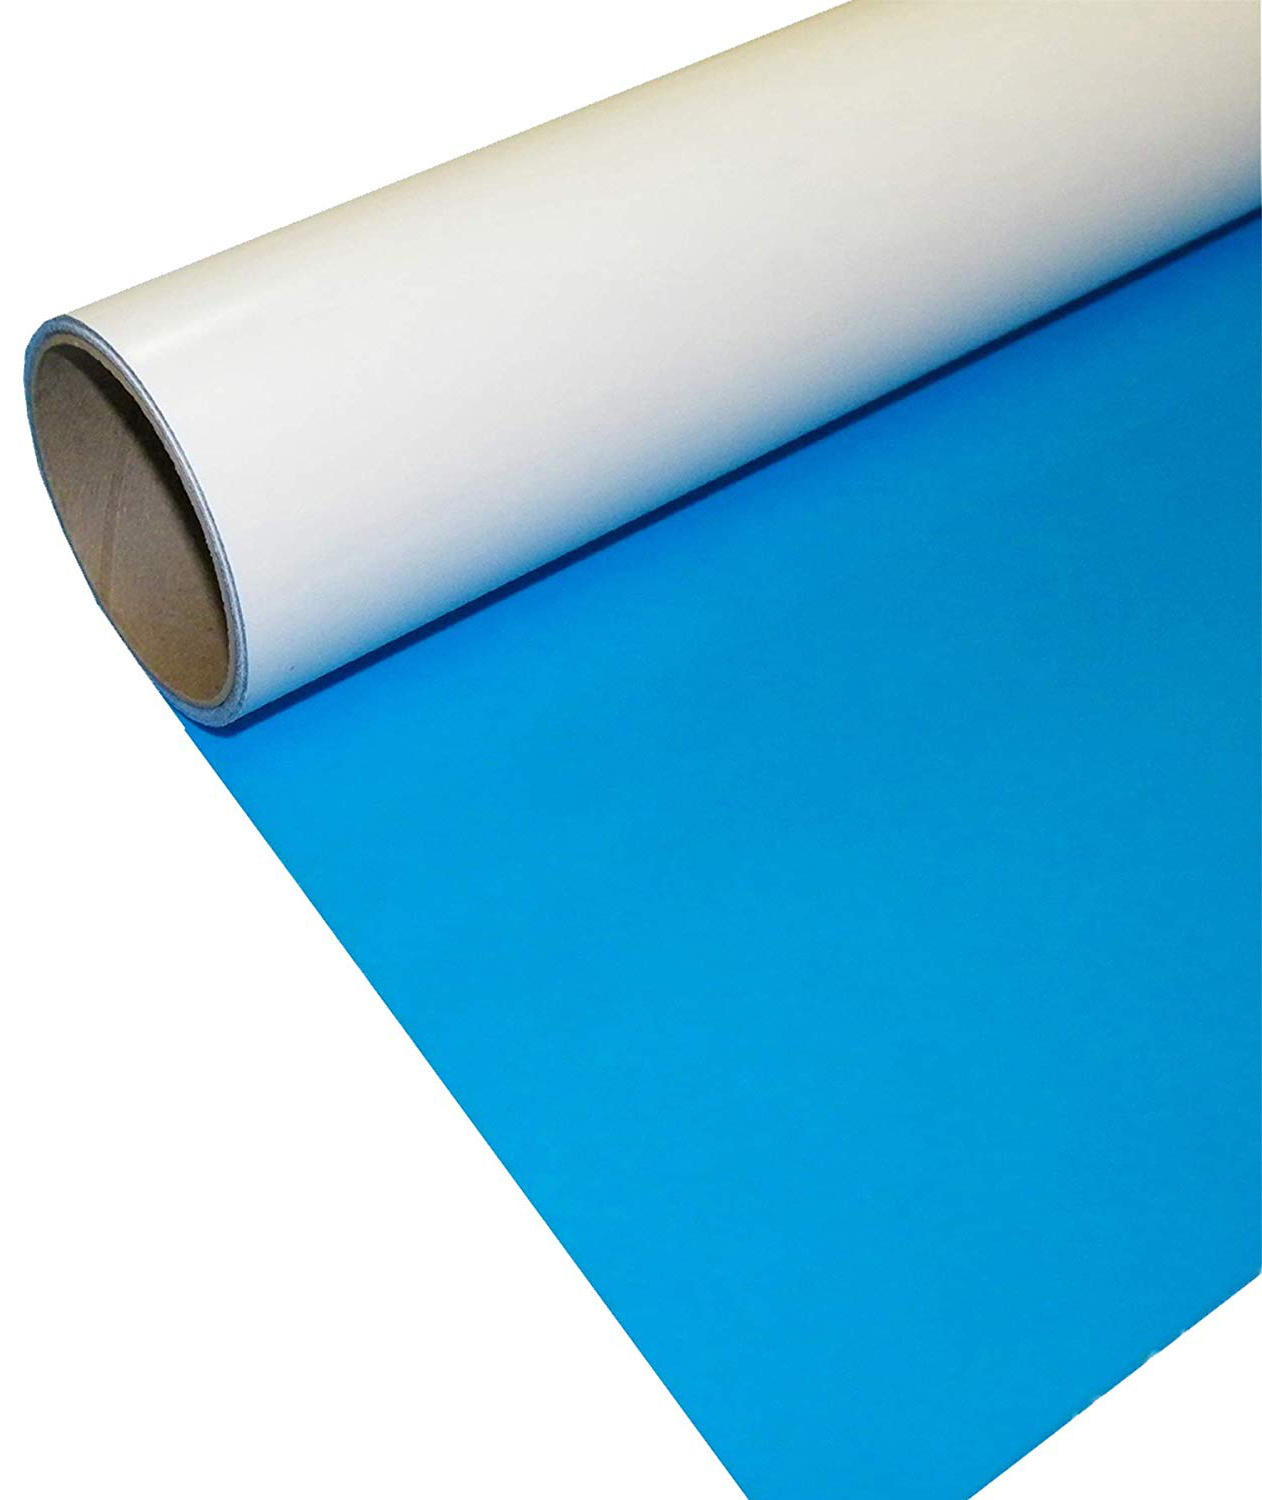 Specialty Materials ThermoFlex TURBO Columbia Blue - Specialty Materials ThermoFlex Turbo Heat Transfer Film